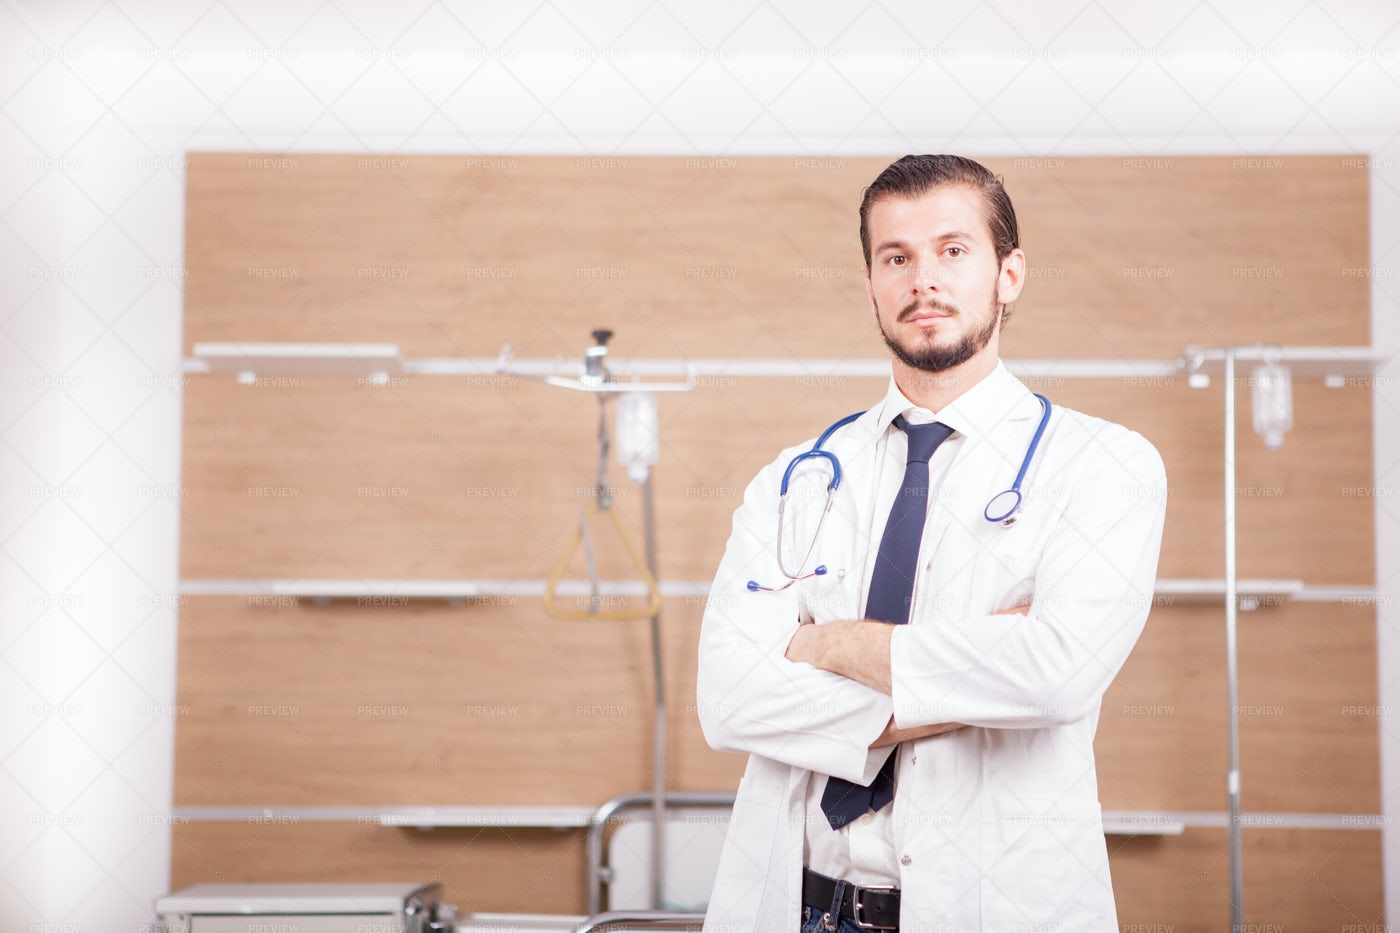 Doctor With Stethoscope: Stock Photos